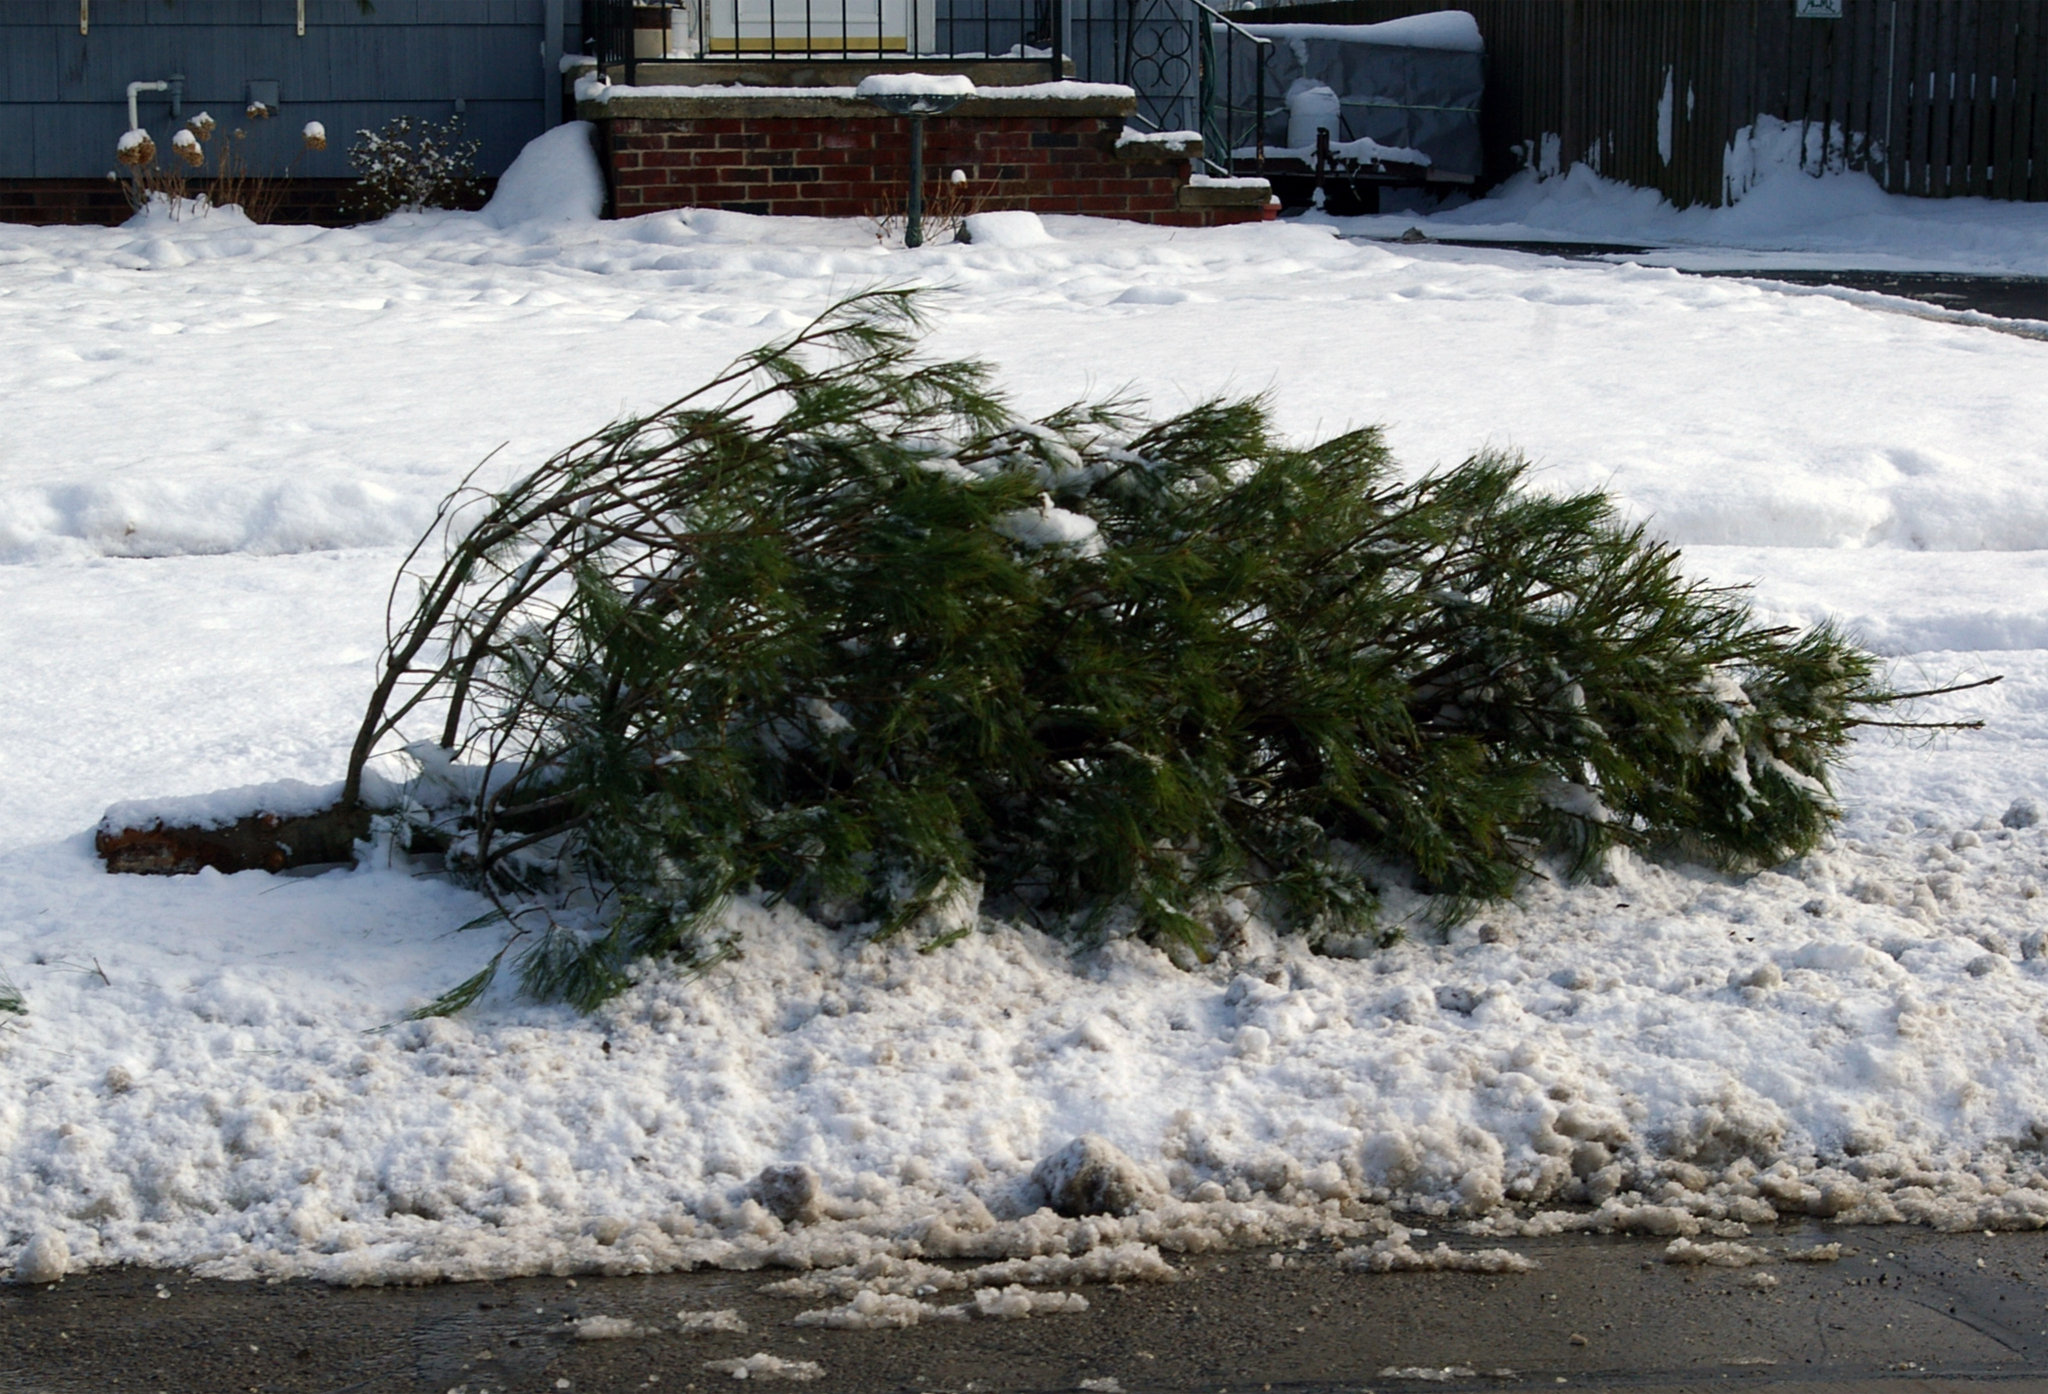 City Will Pick Up Discarded Live Christmas Trees No Waste